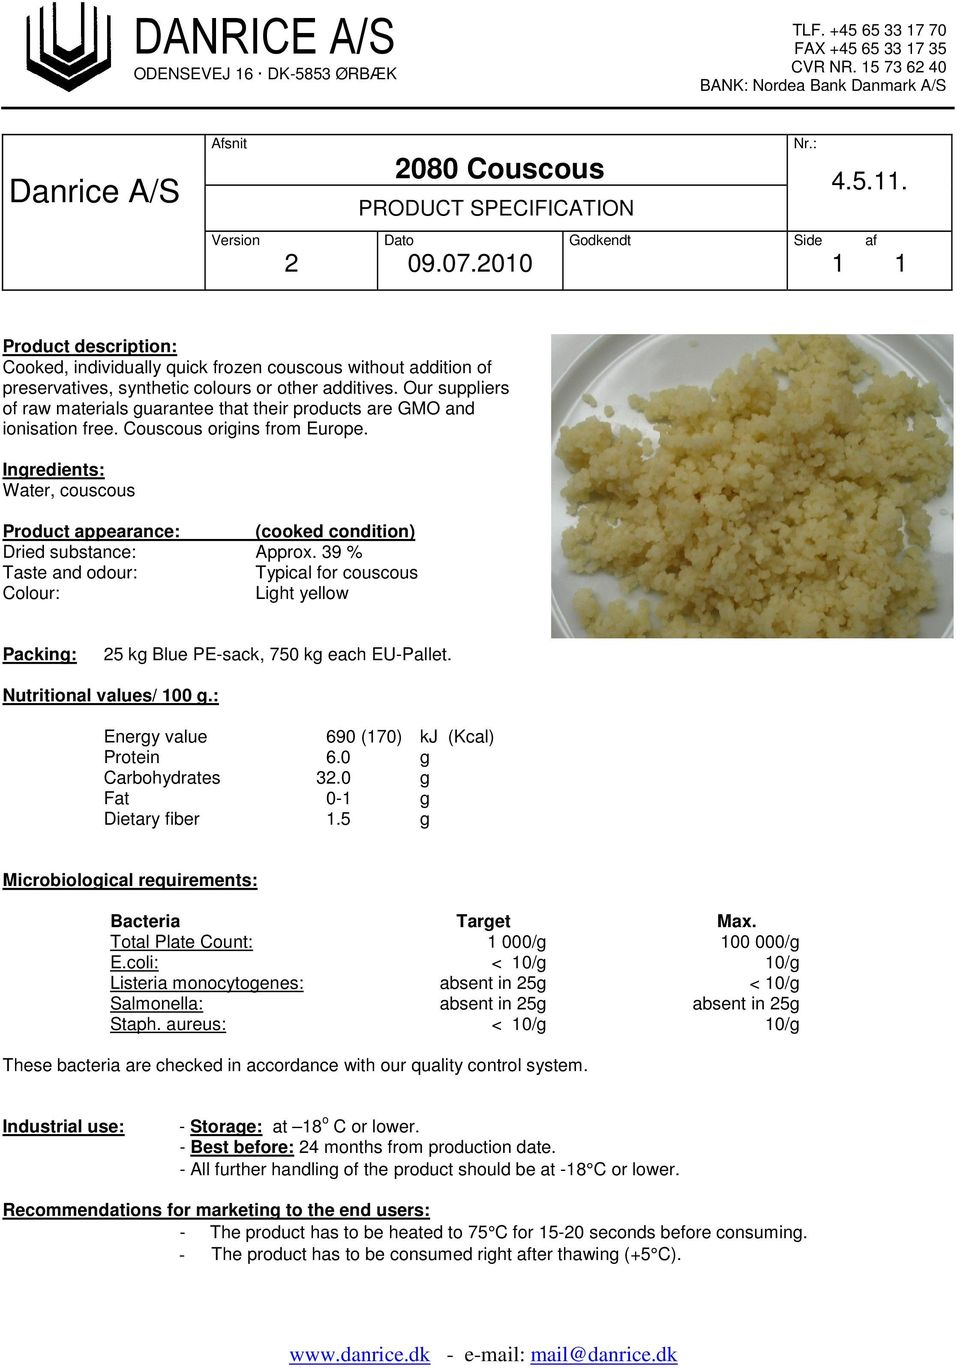 Our suppliers of raw materials guarantee that their products are GMO and ionisation free. Couscous origins from Europe.